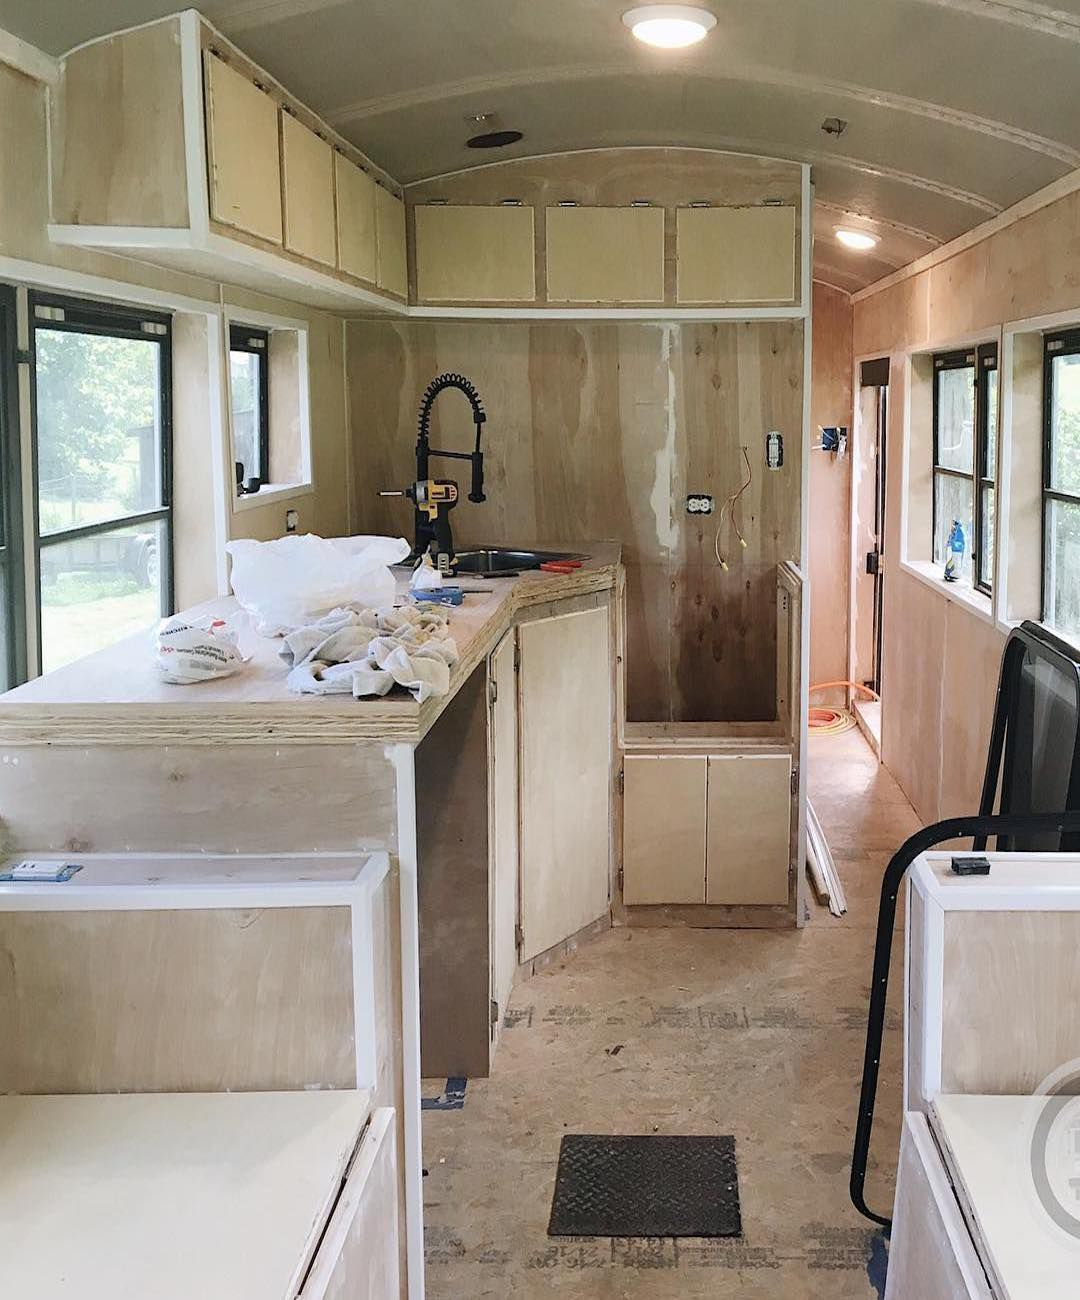 Converted School Bus Houses Family Of 6 In 250 Square Feet